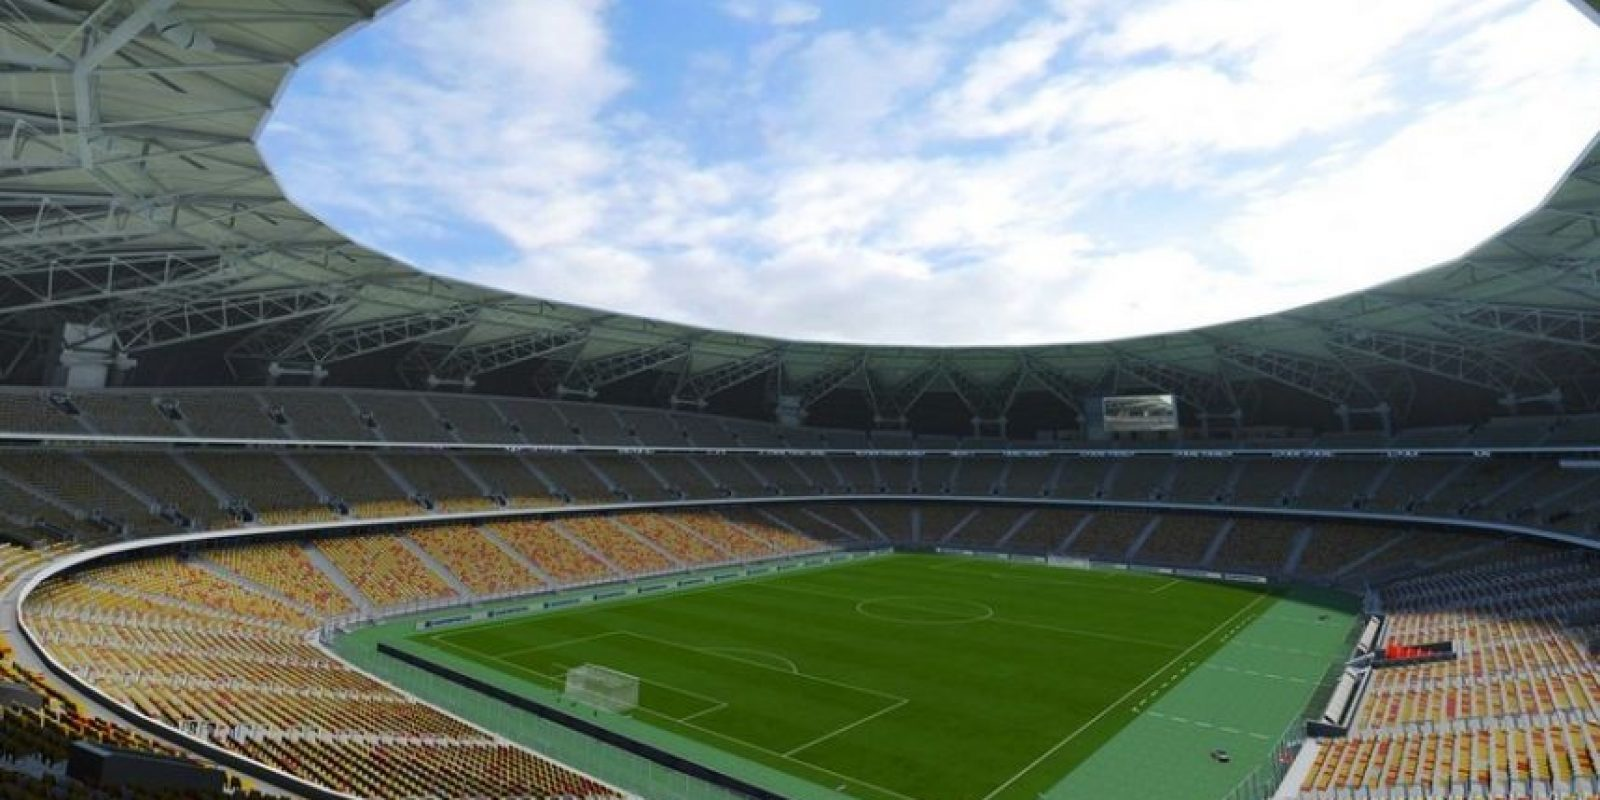 King Abdullah Sports City (Al-Ittihad y Al-Ahli, Abdul Latif Jameel League de Arabia Saudita). Foto: EA Sports